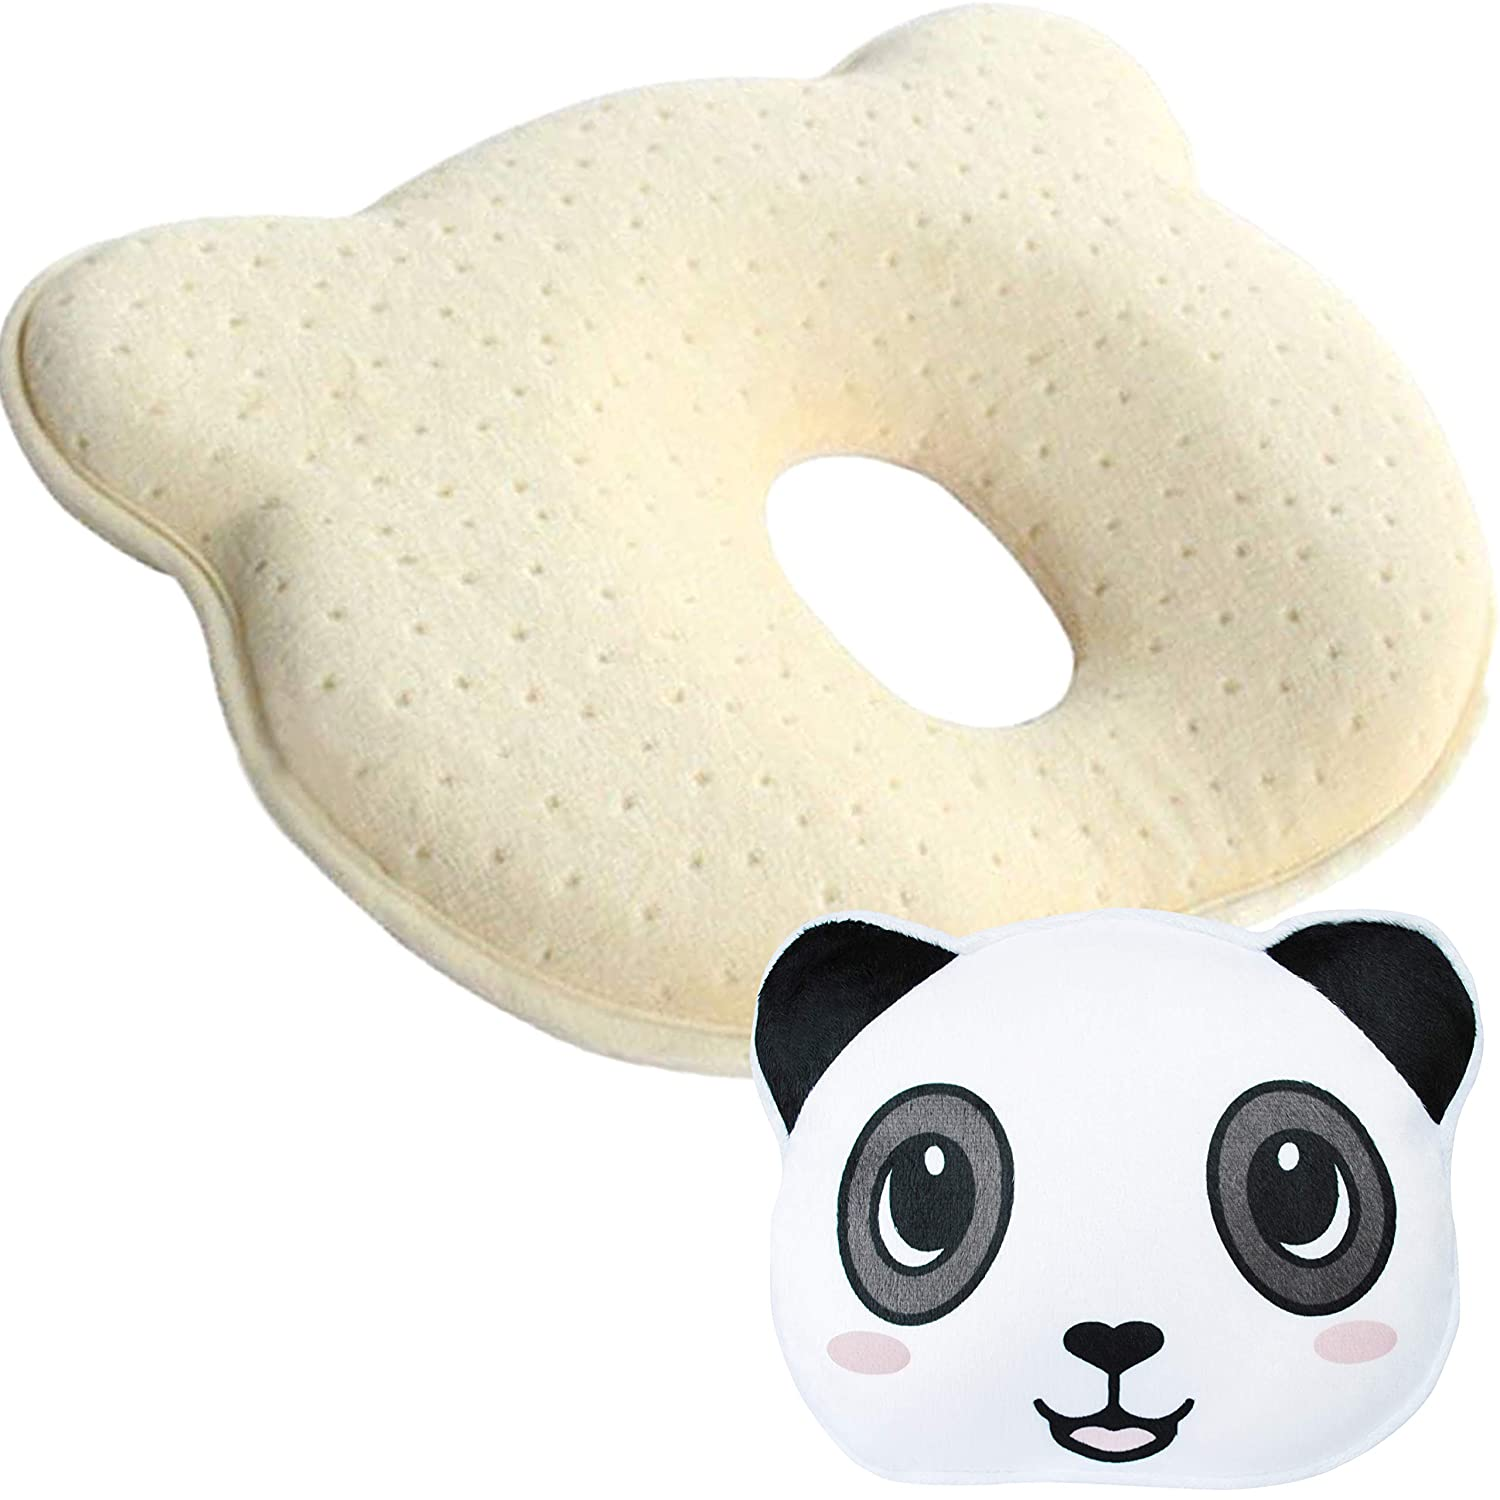 Newborn Baby Head Shaping Pillow, Prevents & Corrects Flat Head Syndrome | Supports Healthy Neck and Spine Development | Breathable Memory Foam Pillow with a Washable Panda Pillowcase Kit n Baby